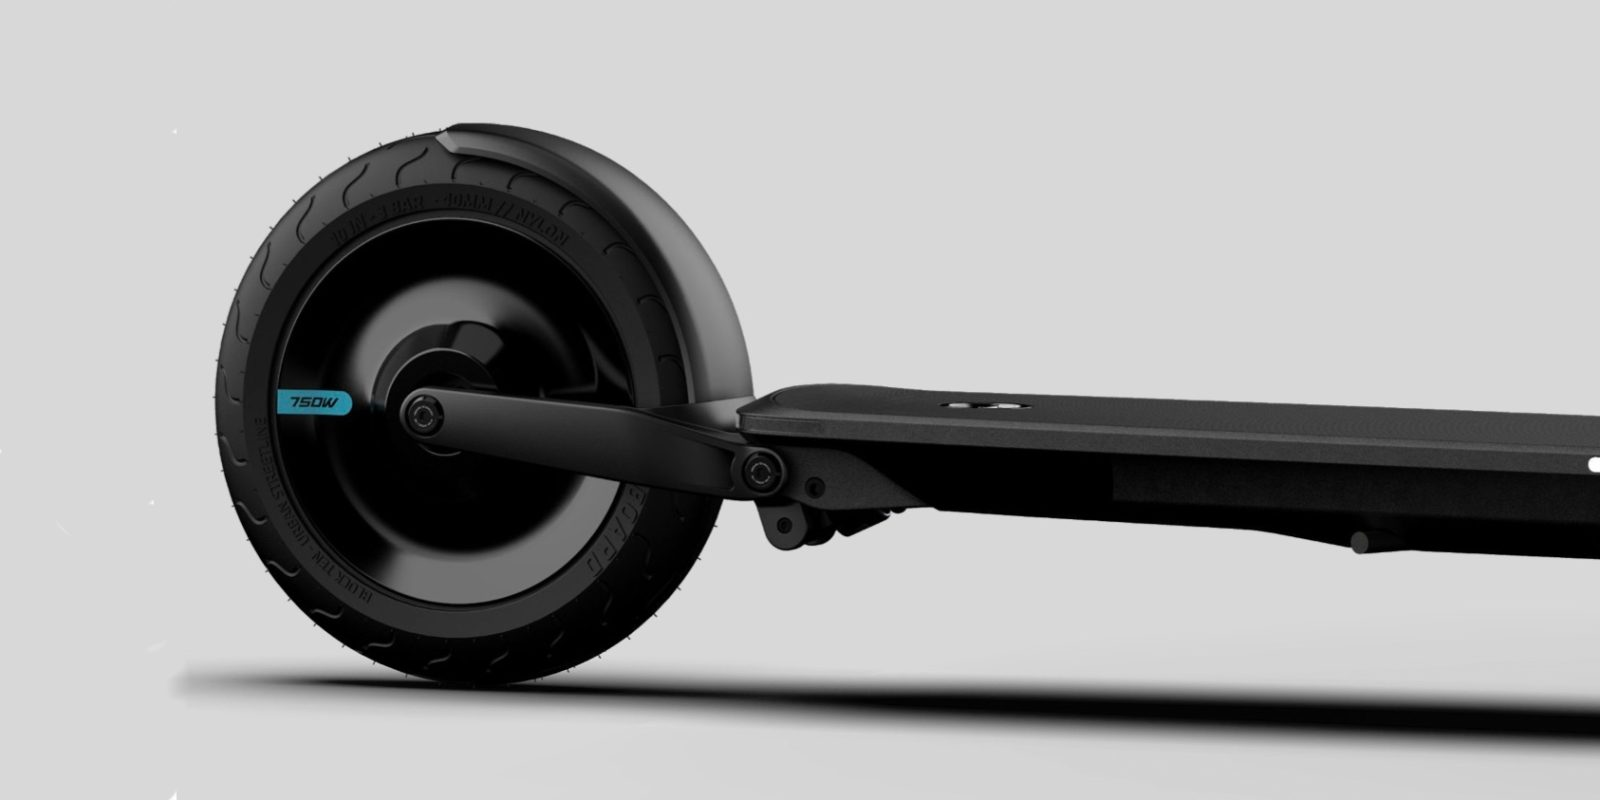 Inboard unveils their new 750W electric scooter and takes aim at